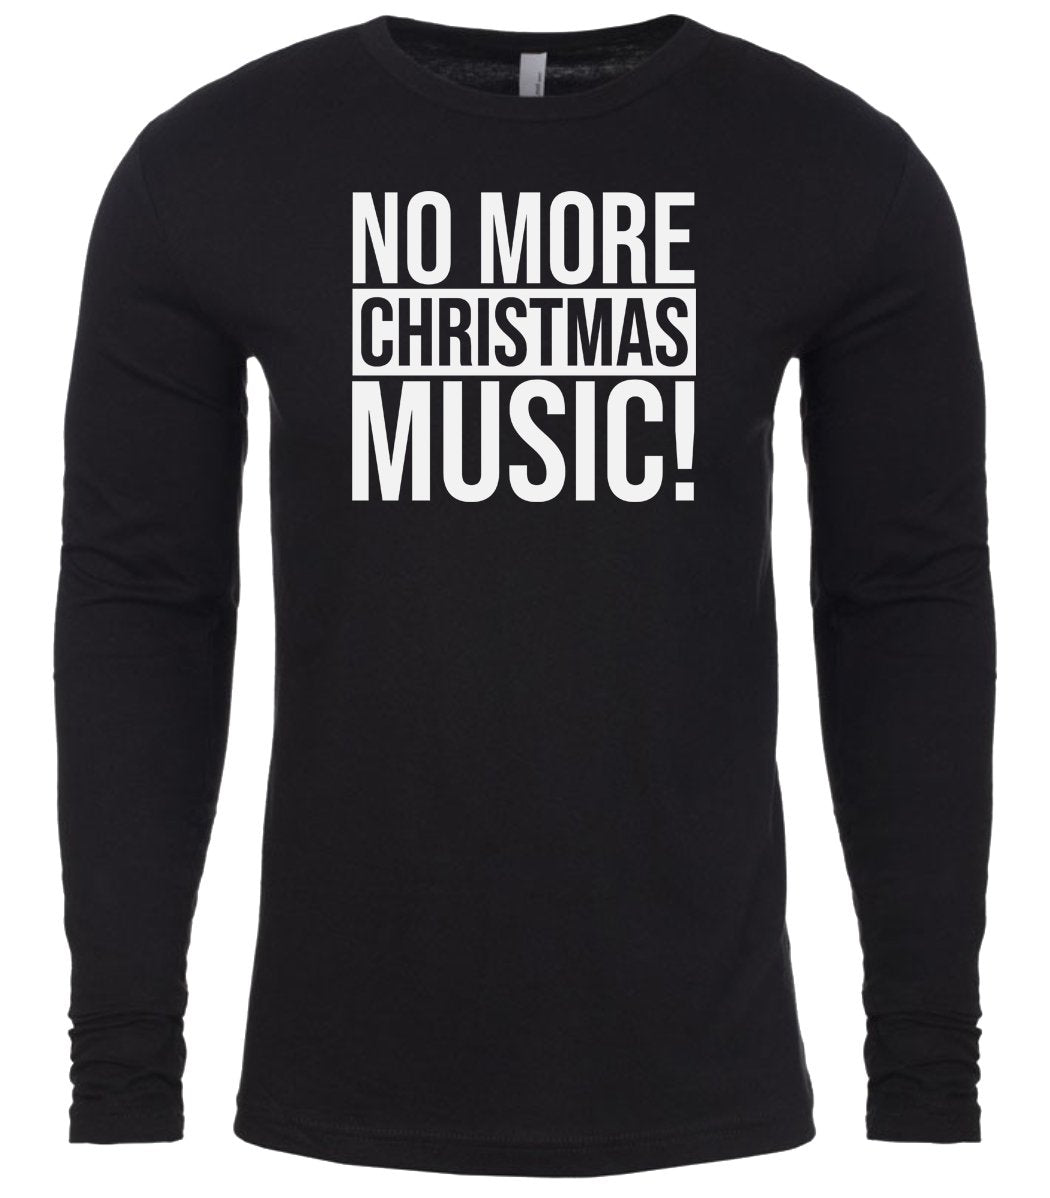 black Christmas music shirt for Men